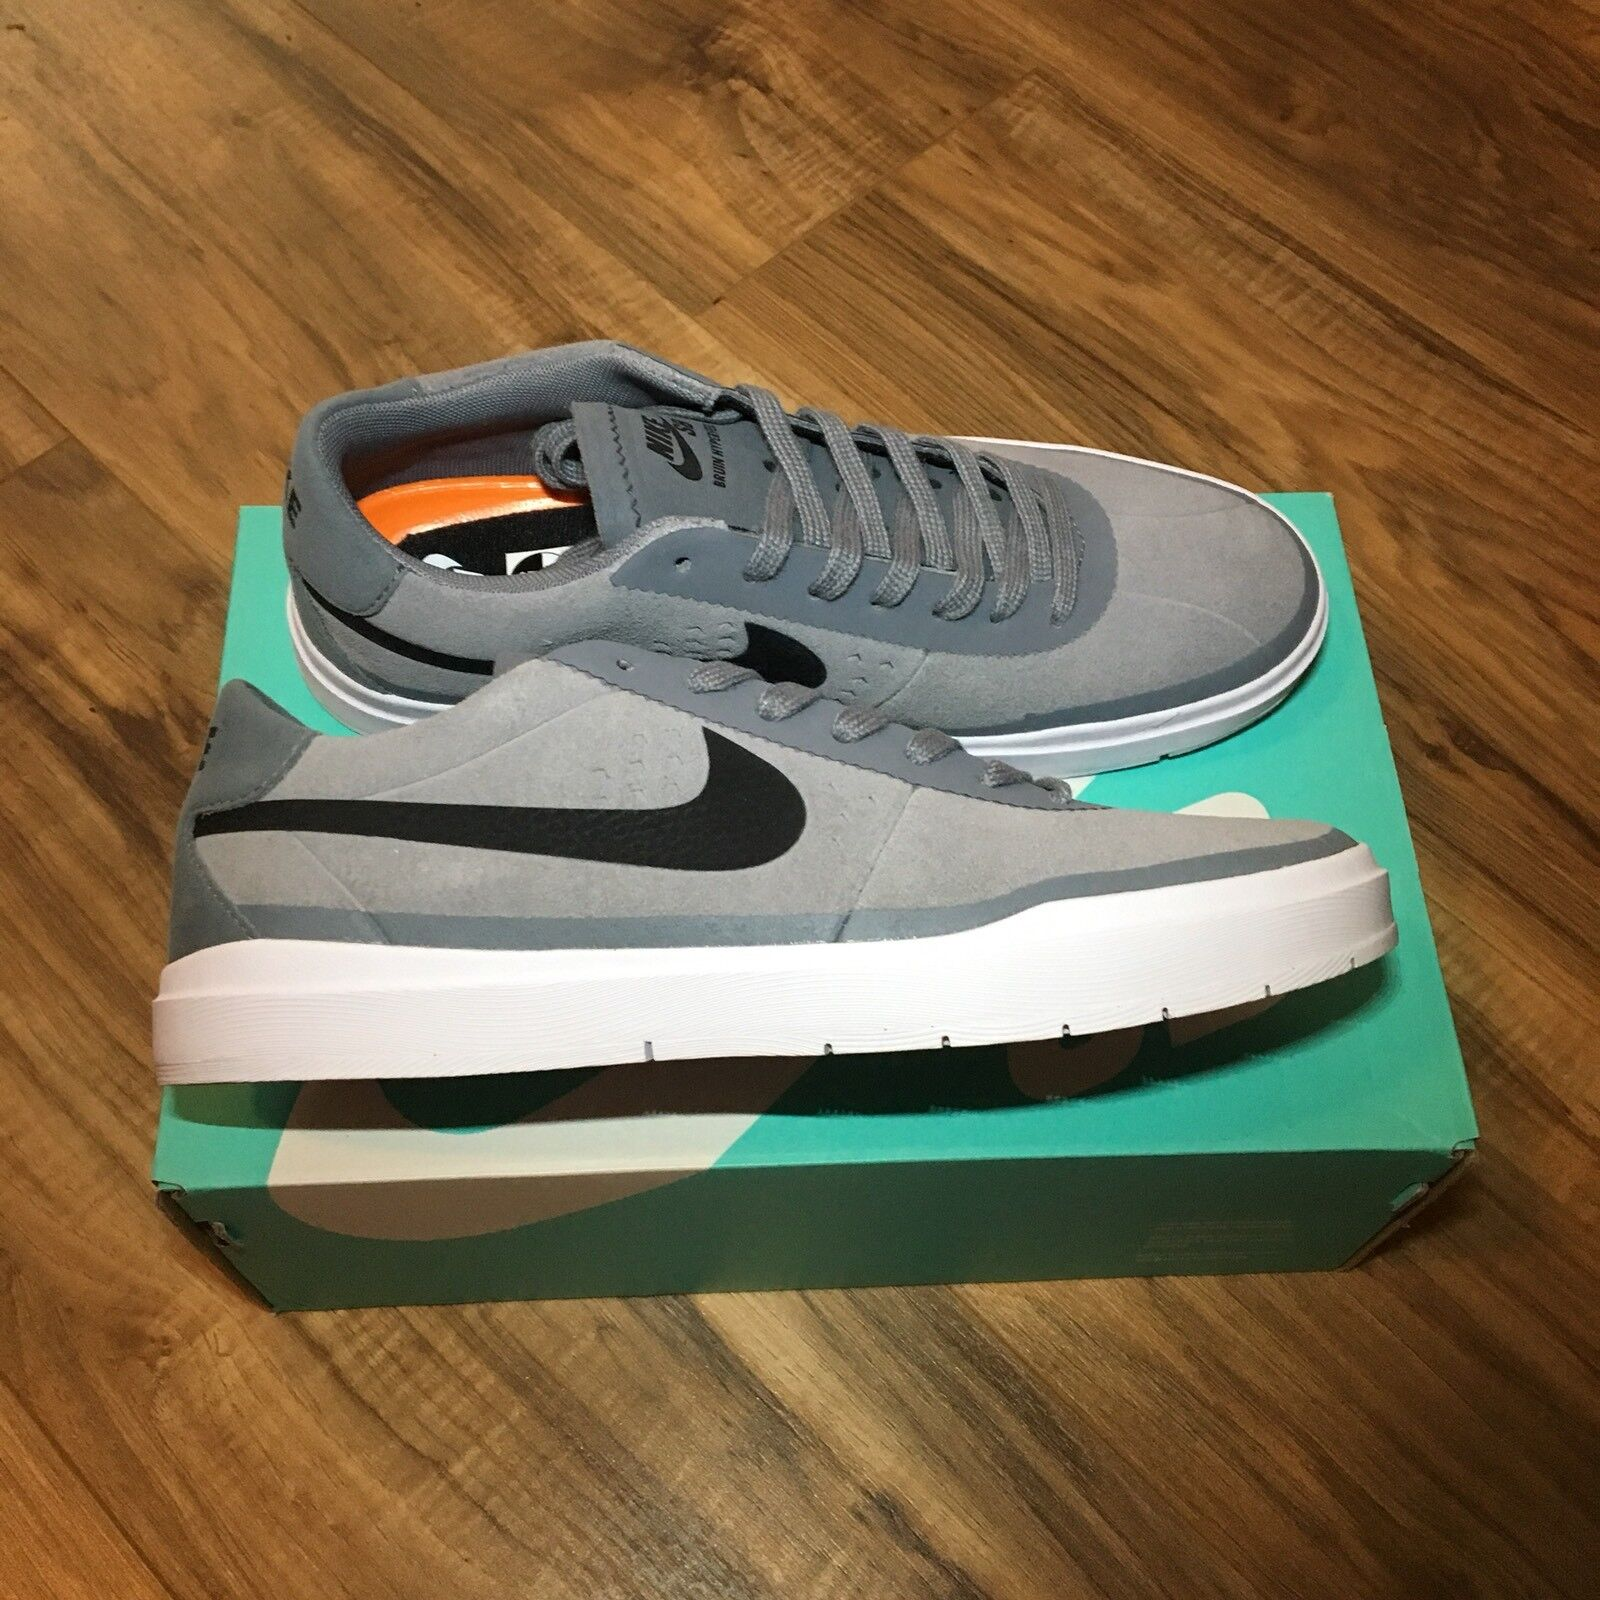 Nike SB Bruin Hyperfeel Skateboard Shoe Cool Grey Black White Sz 5.5 831756-002 The most popular shoes for men and women